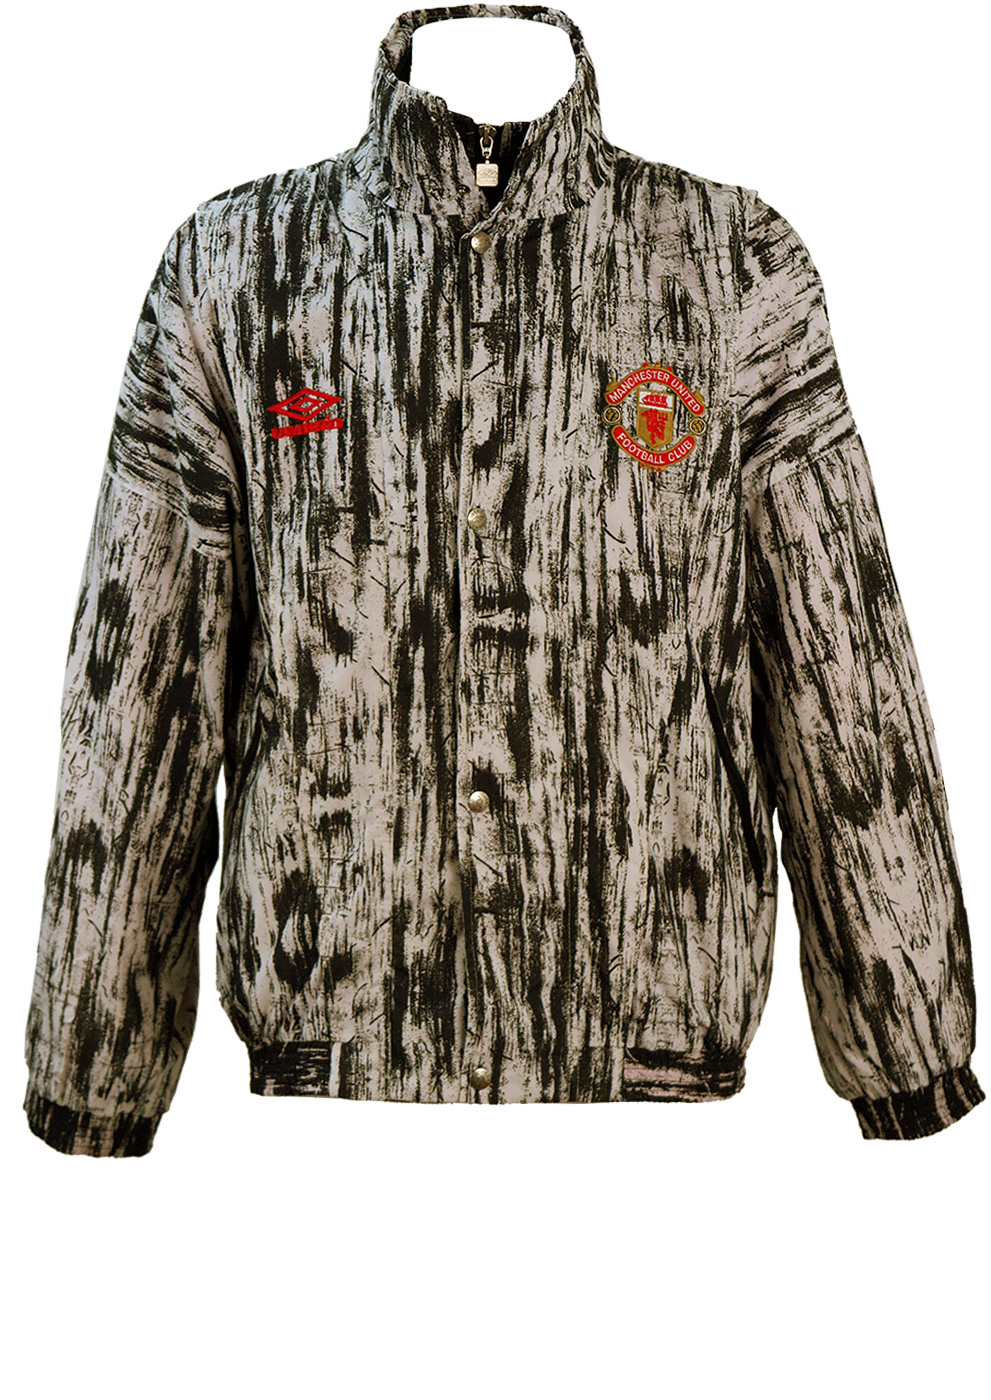 7f80977162c Vintage 90 s Graphic Black   White Manchester United Umbro Track Jacket - L  XL. Touch to zoom